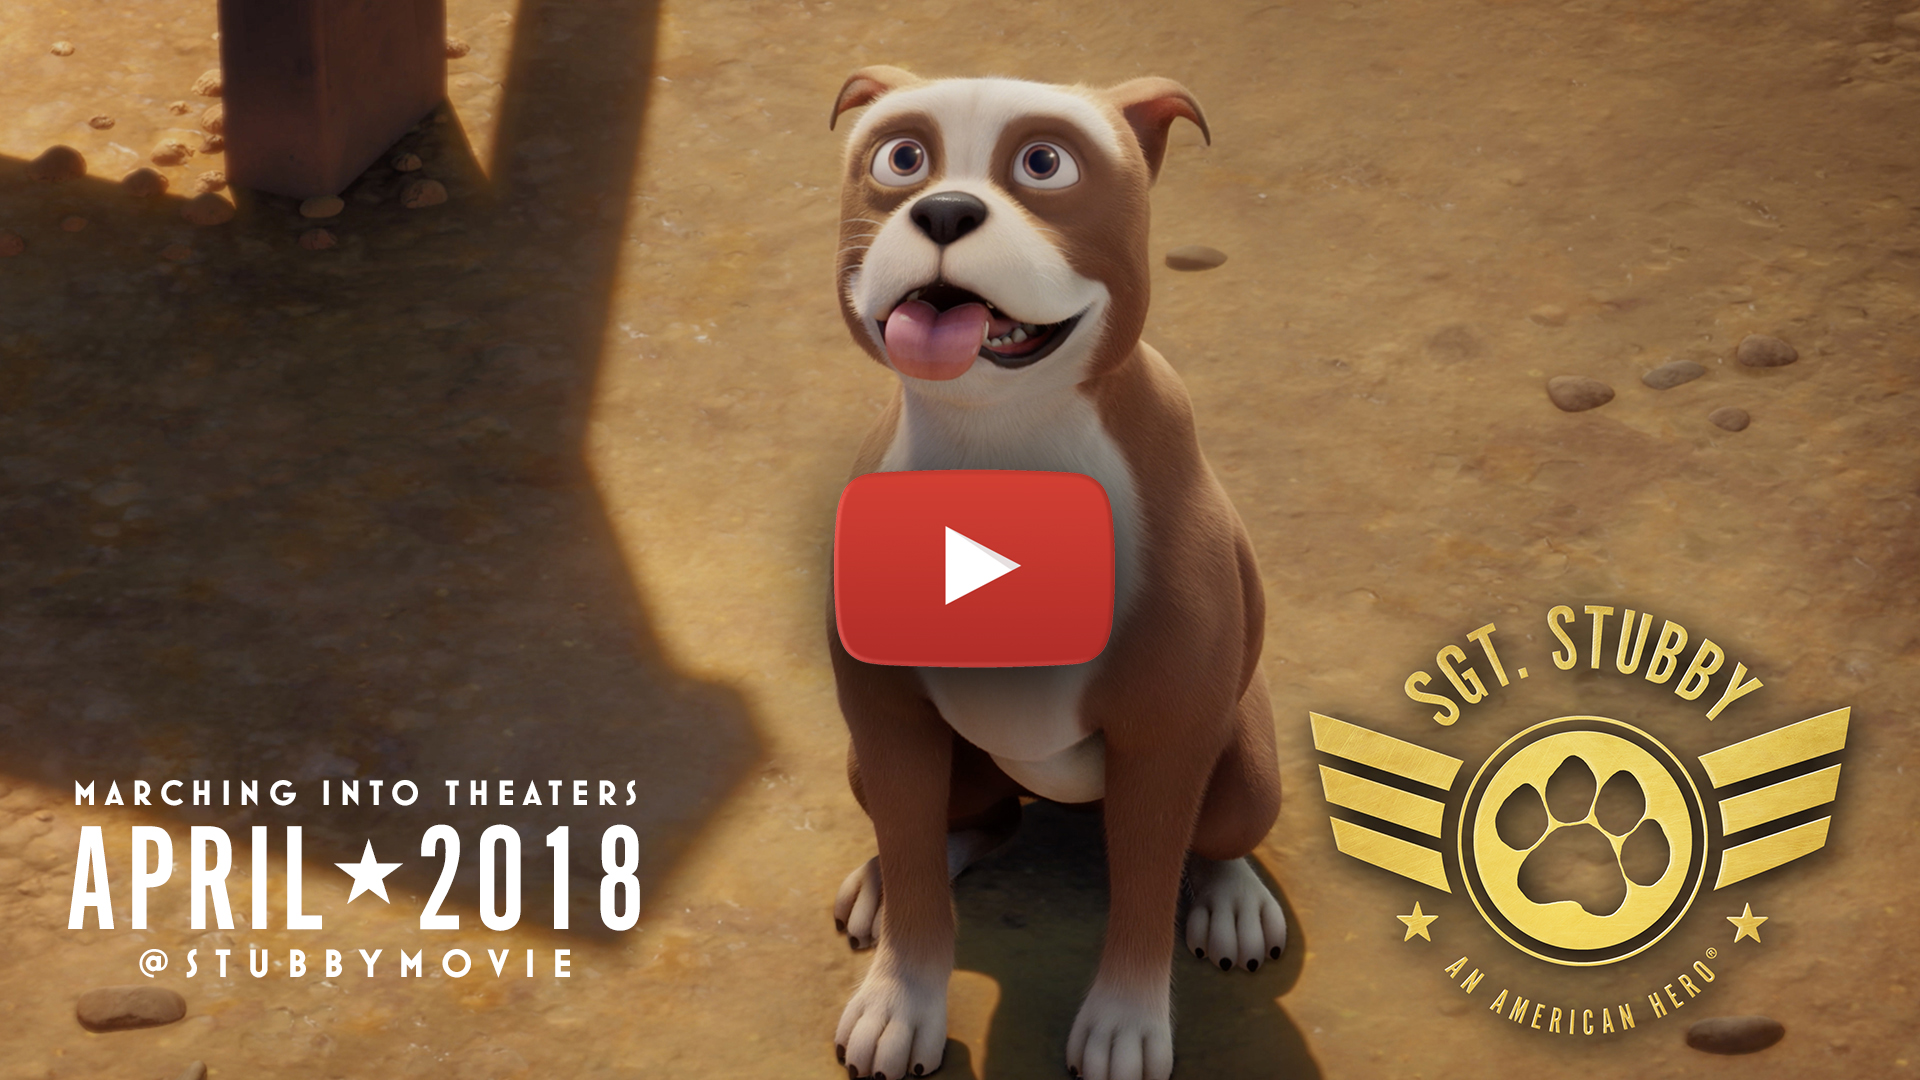 pet 2016 trailer youtube bigcbit com agen resmi vimax